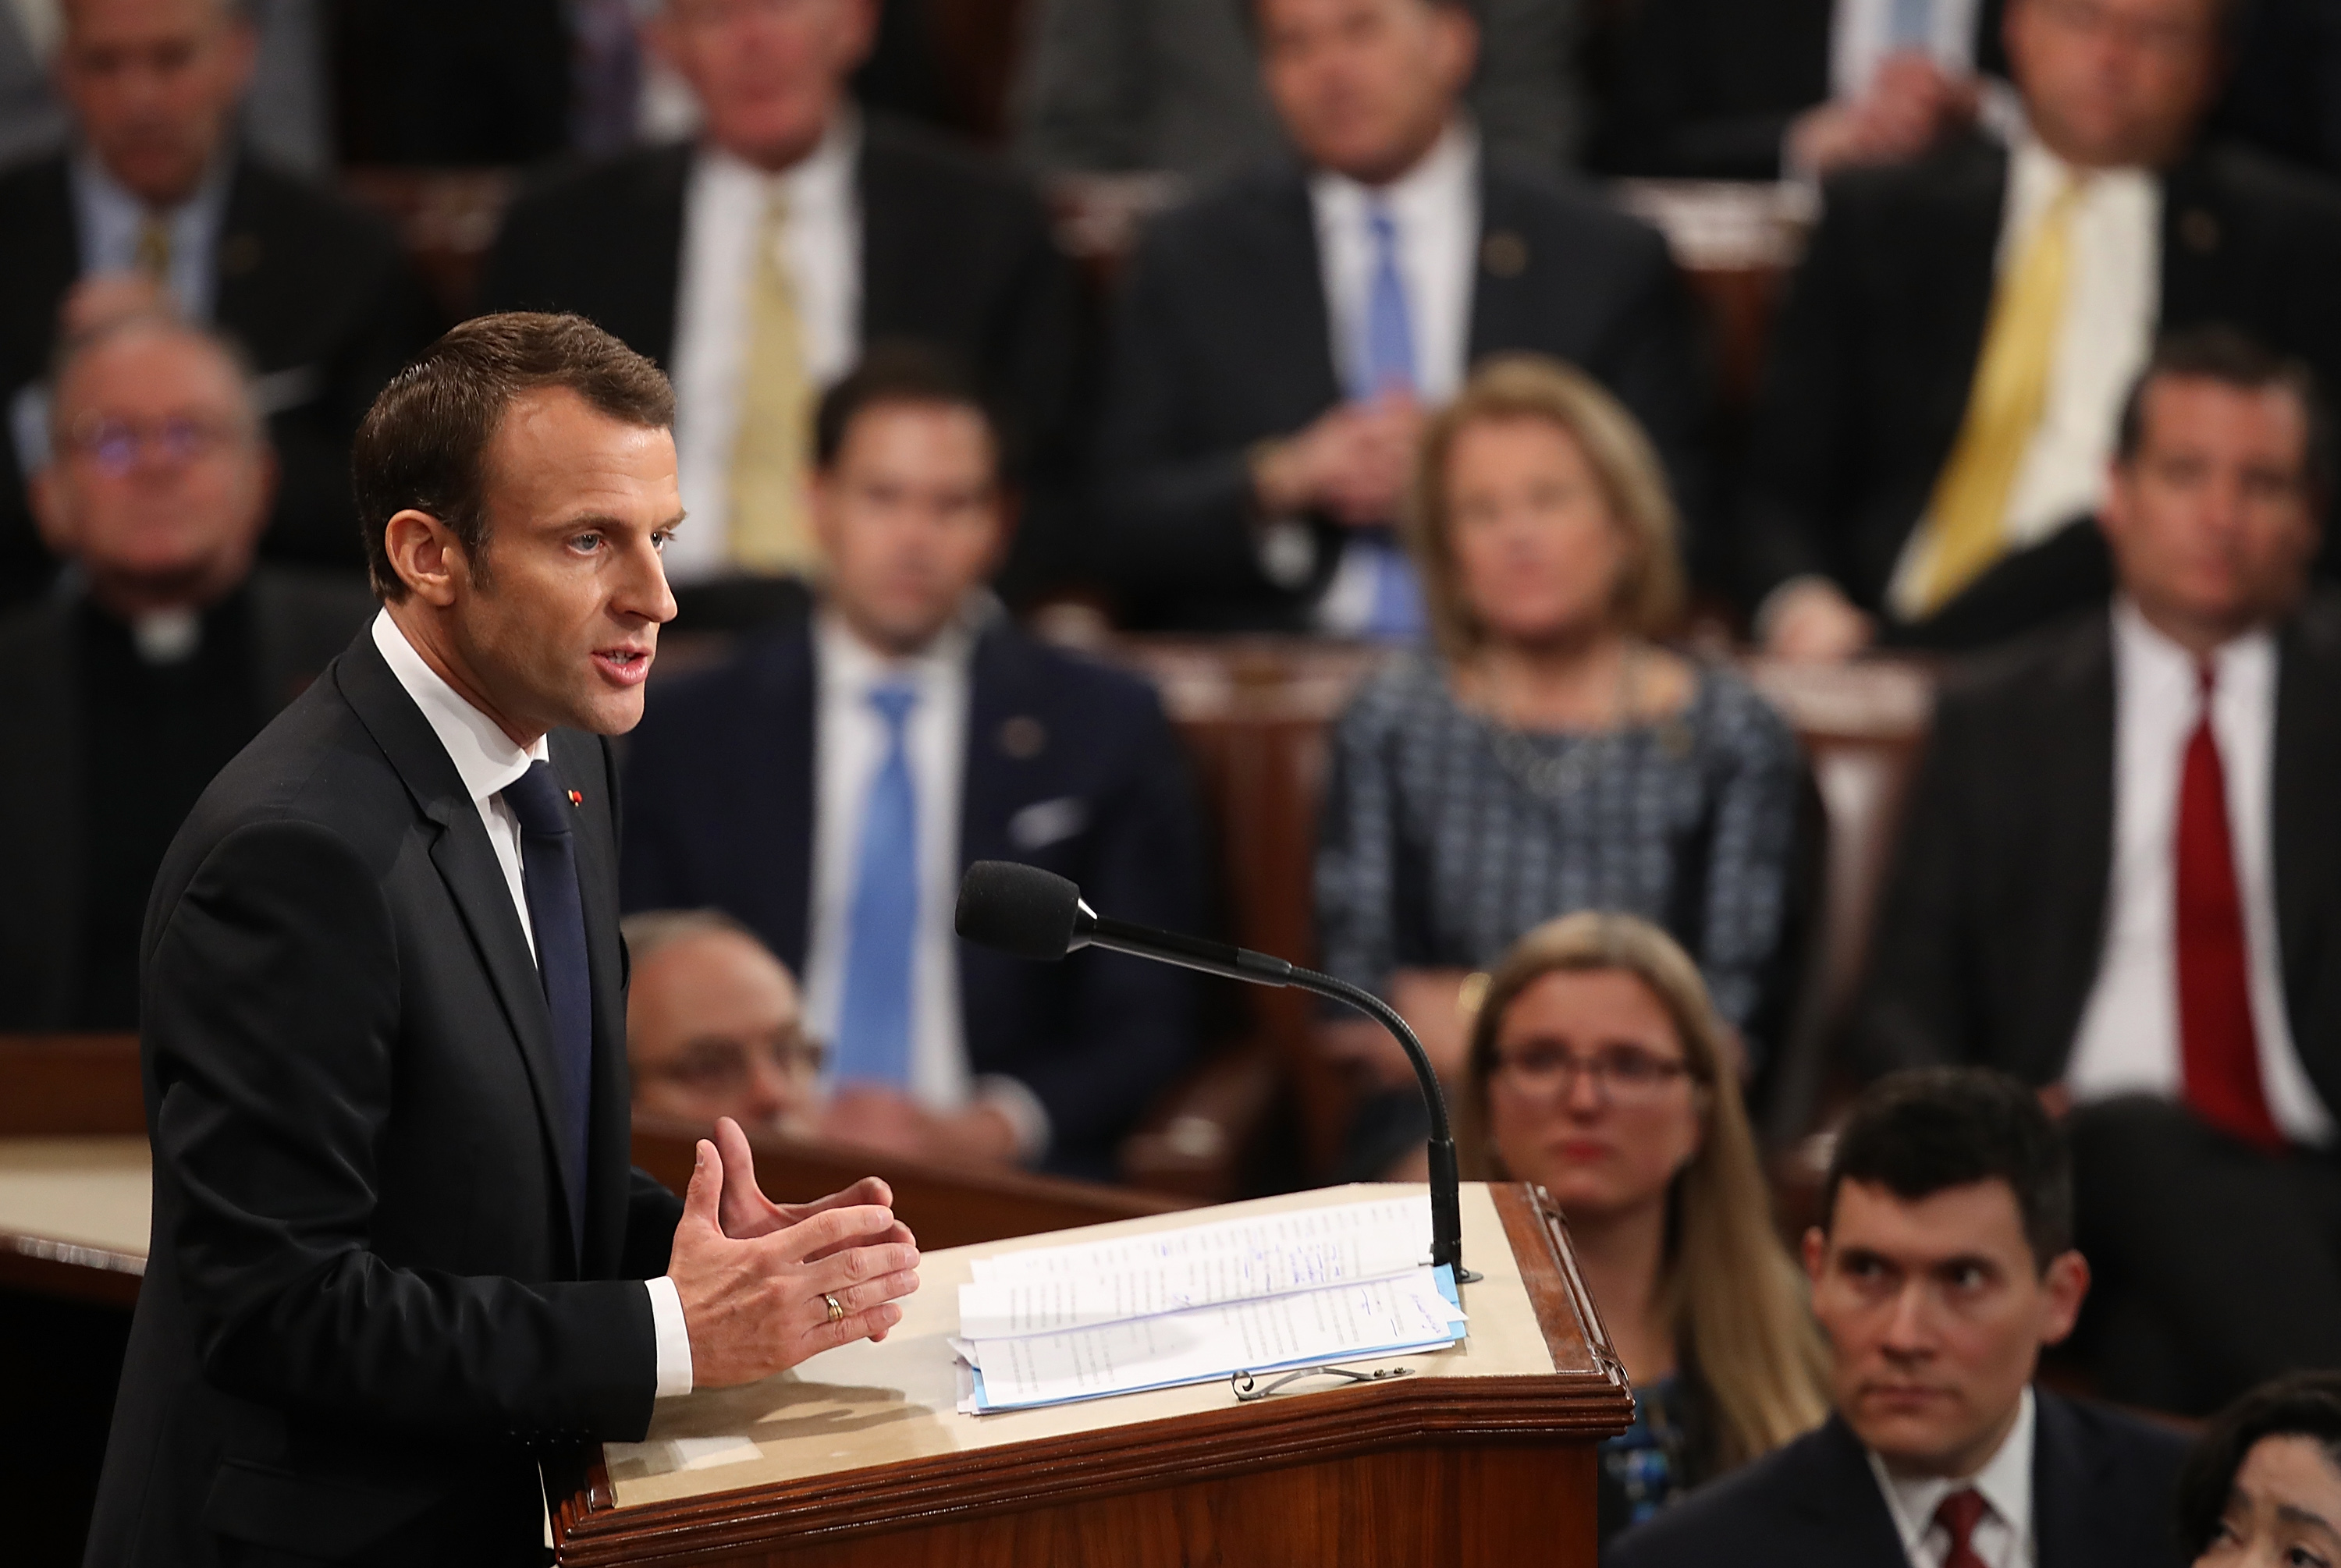 Macron just slammed Trump's worldview in a rare address to Congress